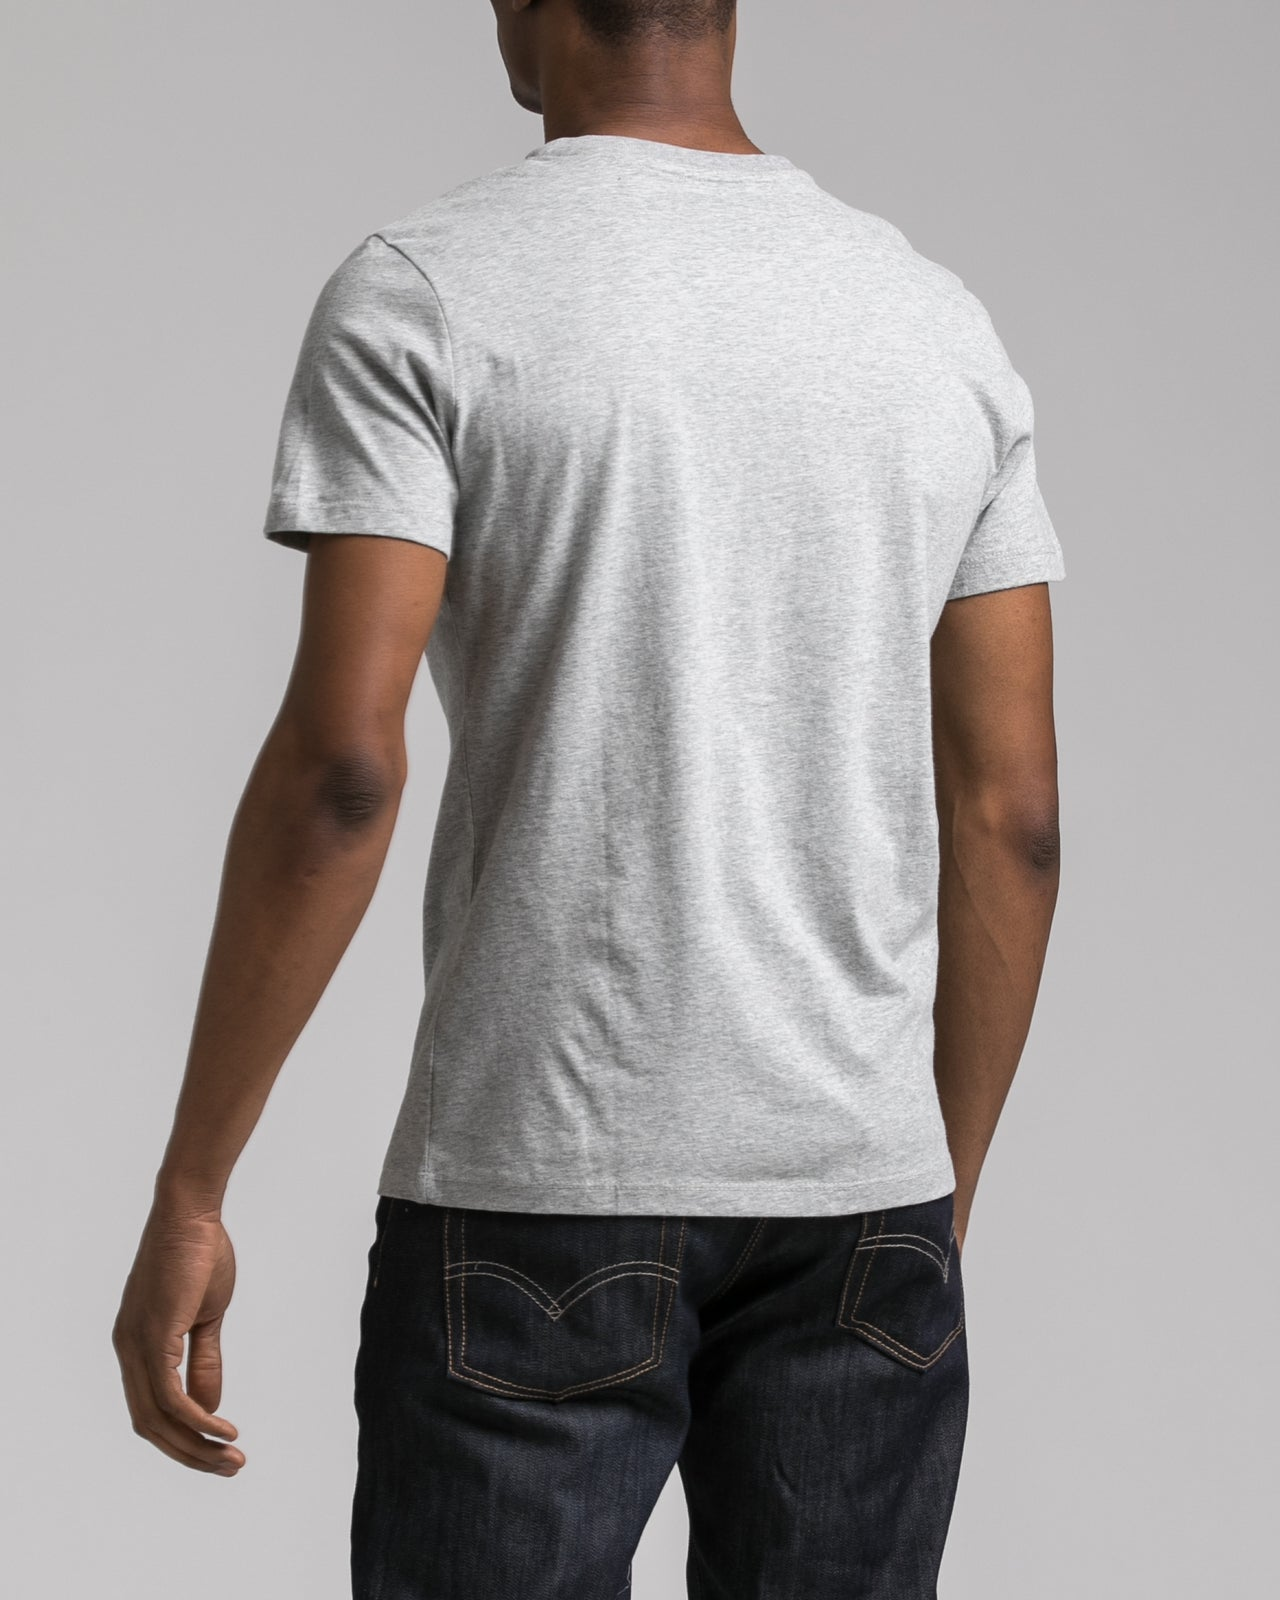 Slim Tee - Color: Heather Grey | Gray